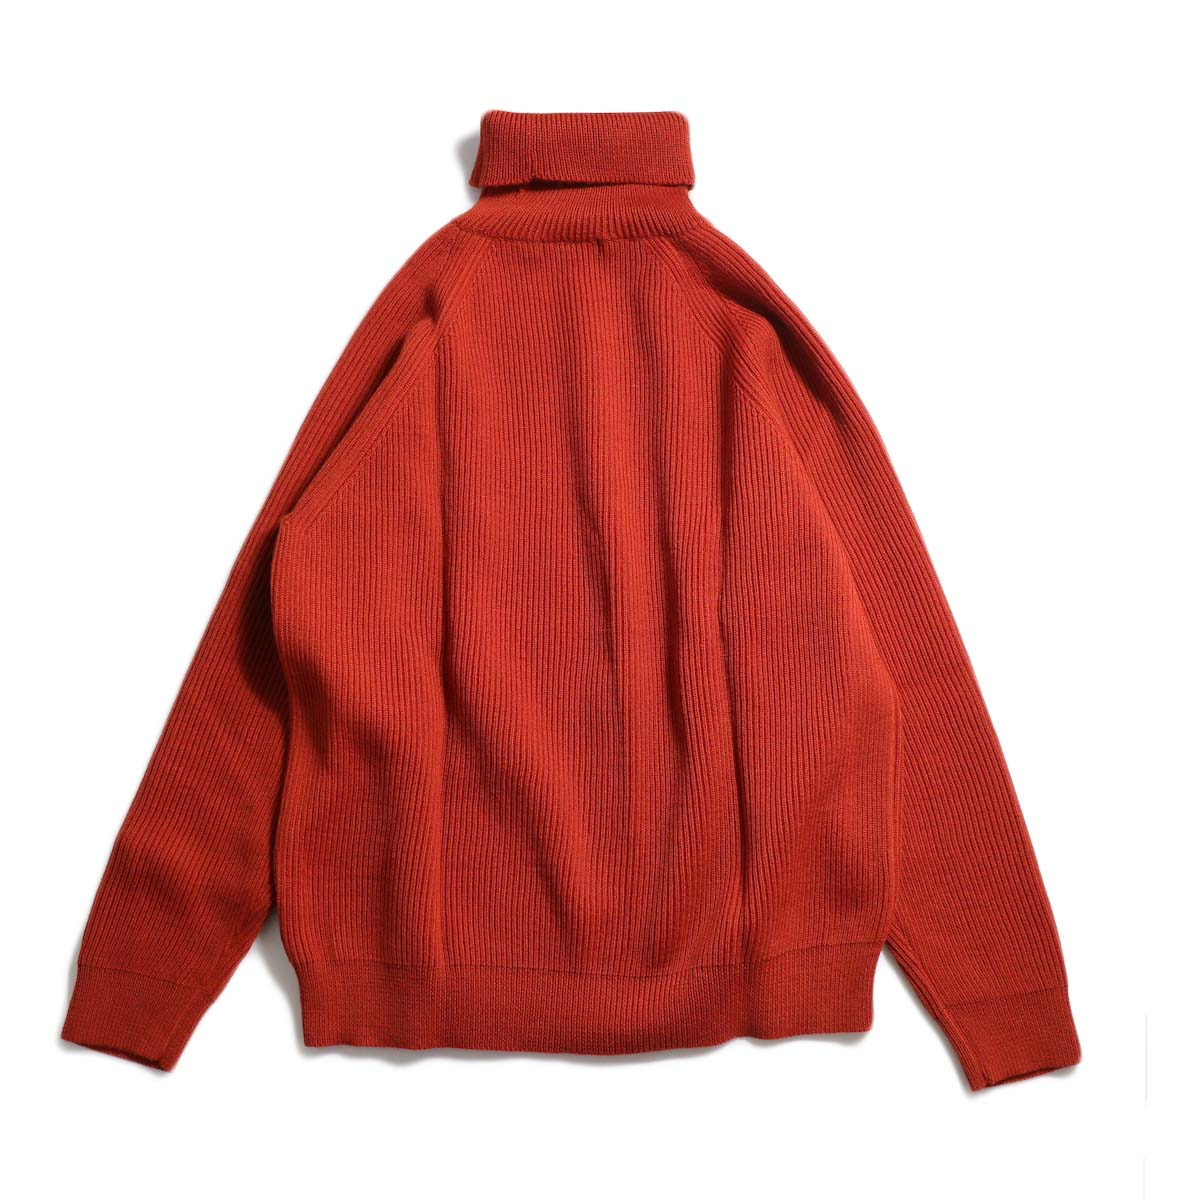 Living Concept / LOW GAUZE TURTLENECK KNIT -RED 背面